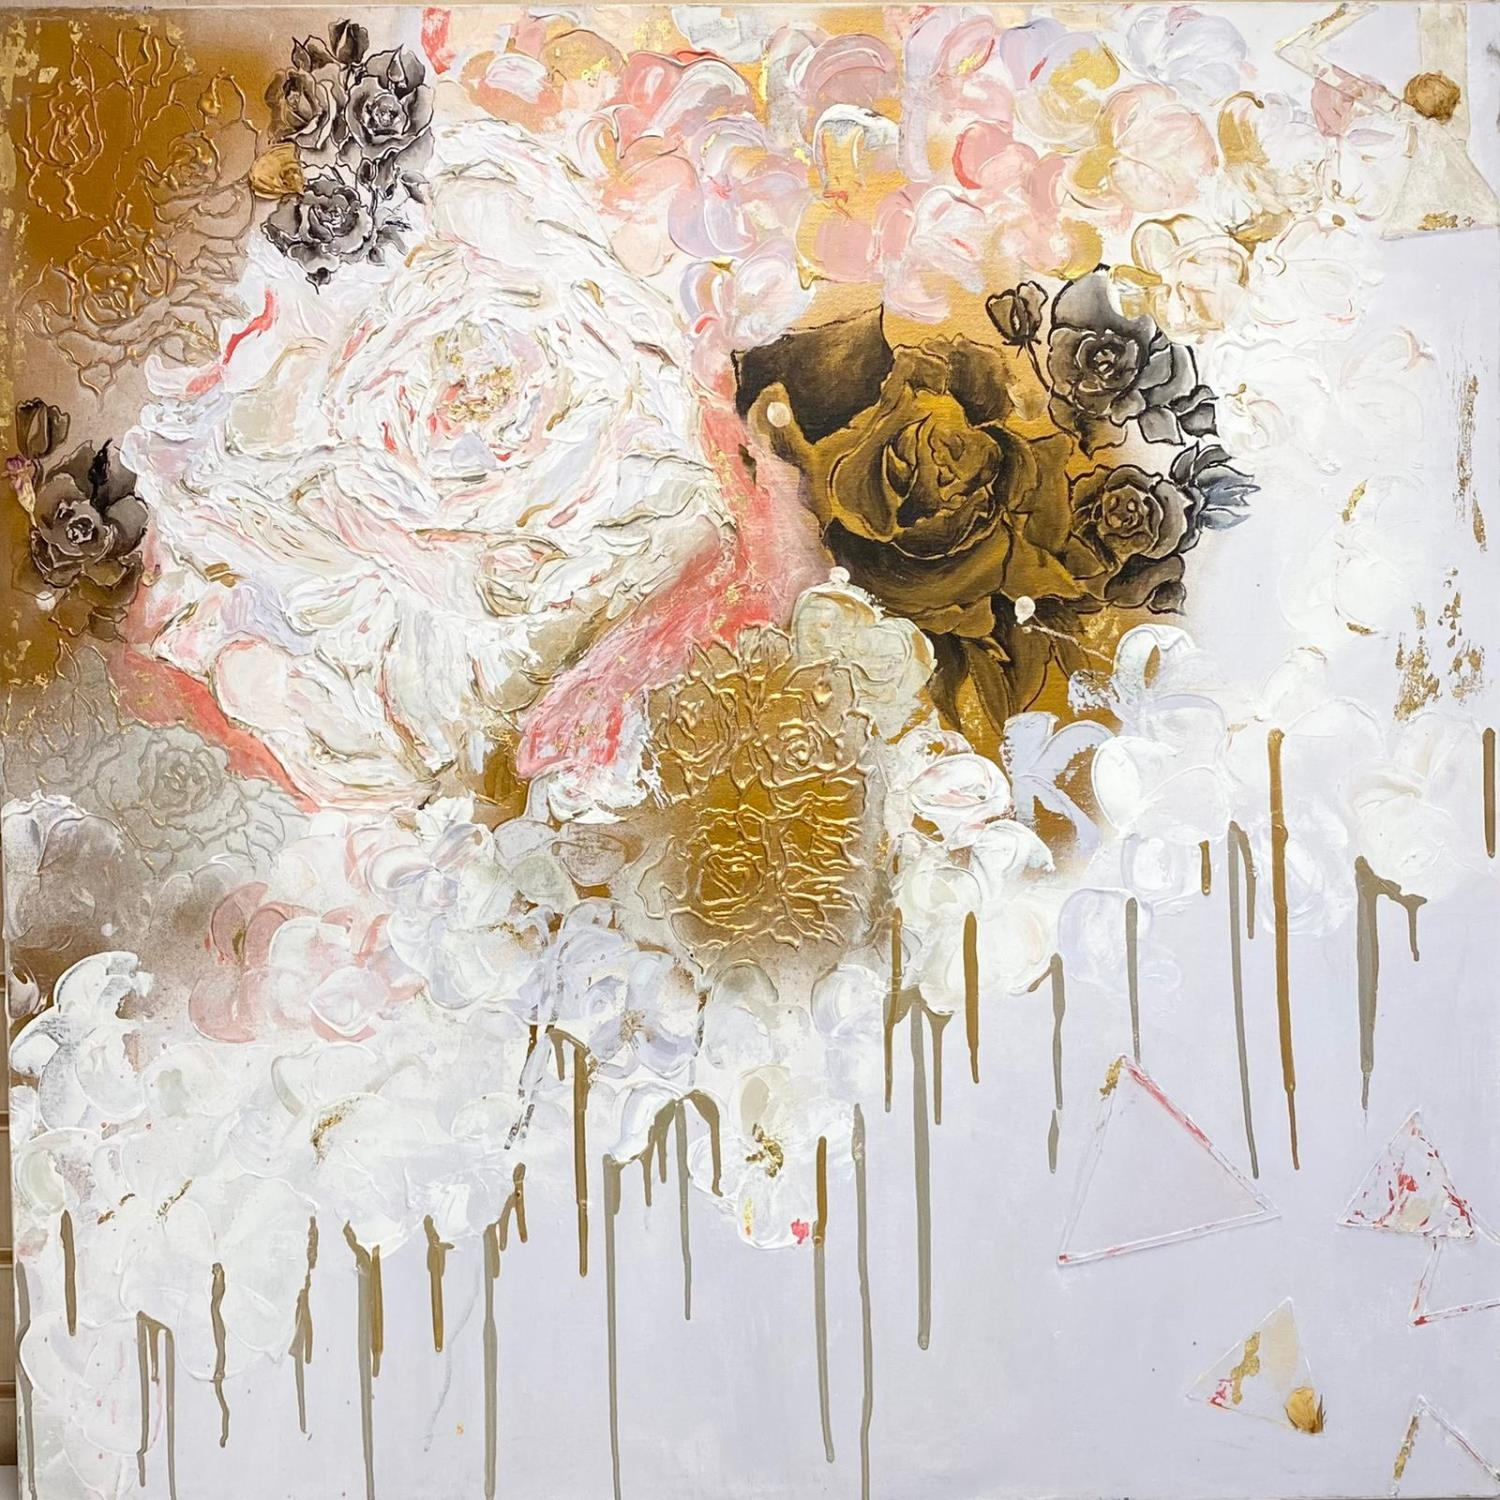 Contemporary abstract painting by well known artist Jaimee Miller. Size 100 x 100 cm. - Image 2 of 2